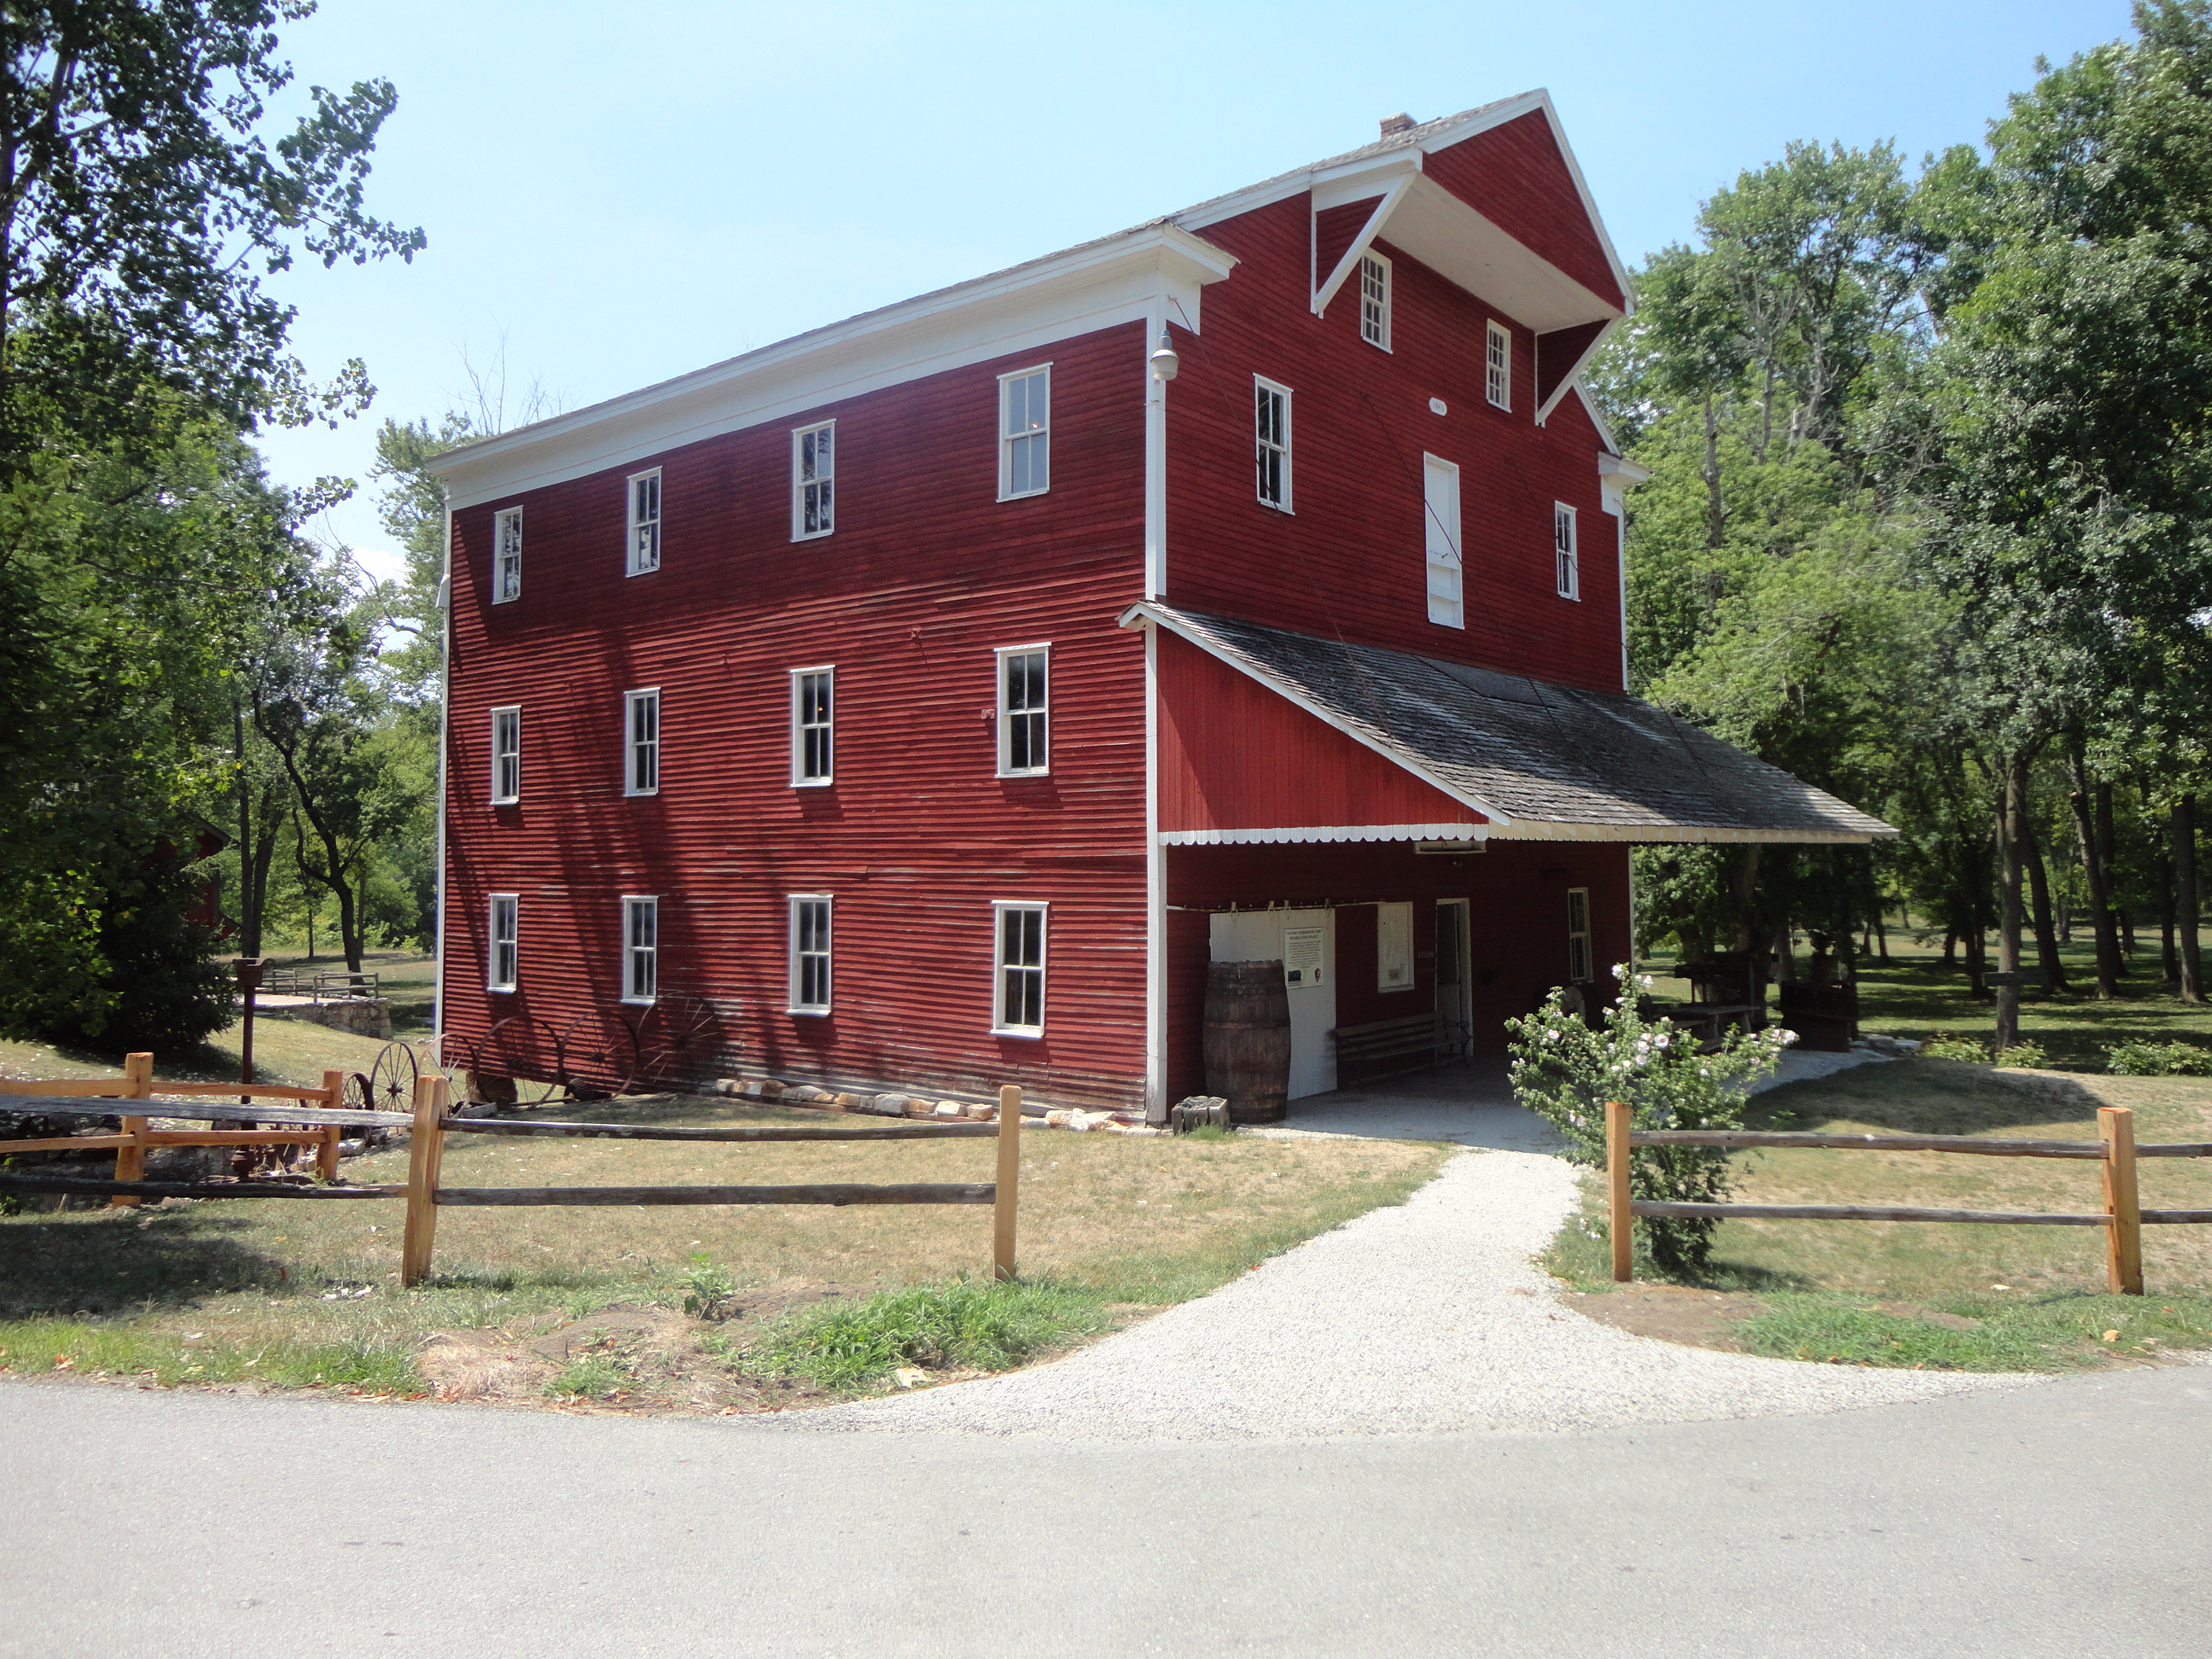 Women on a mission, visited Adams Mill